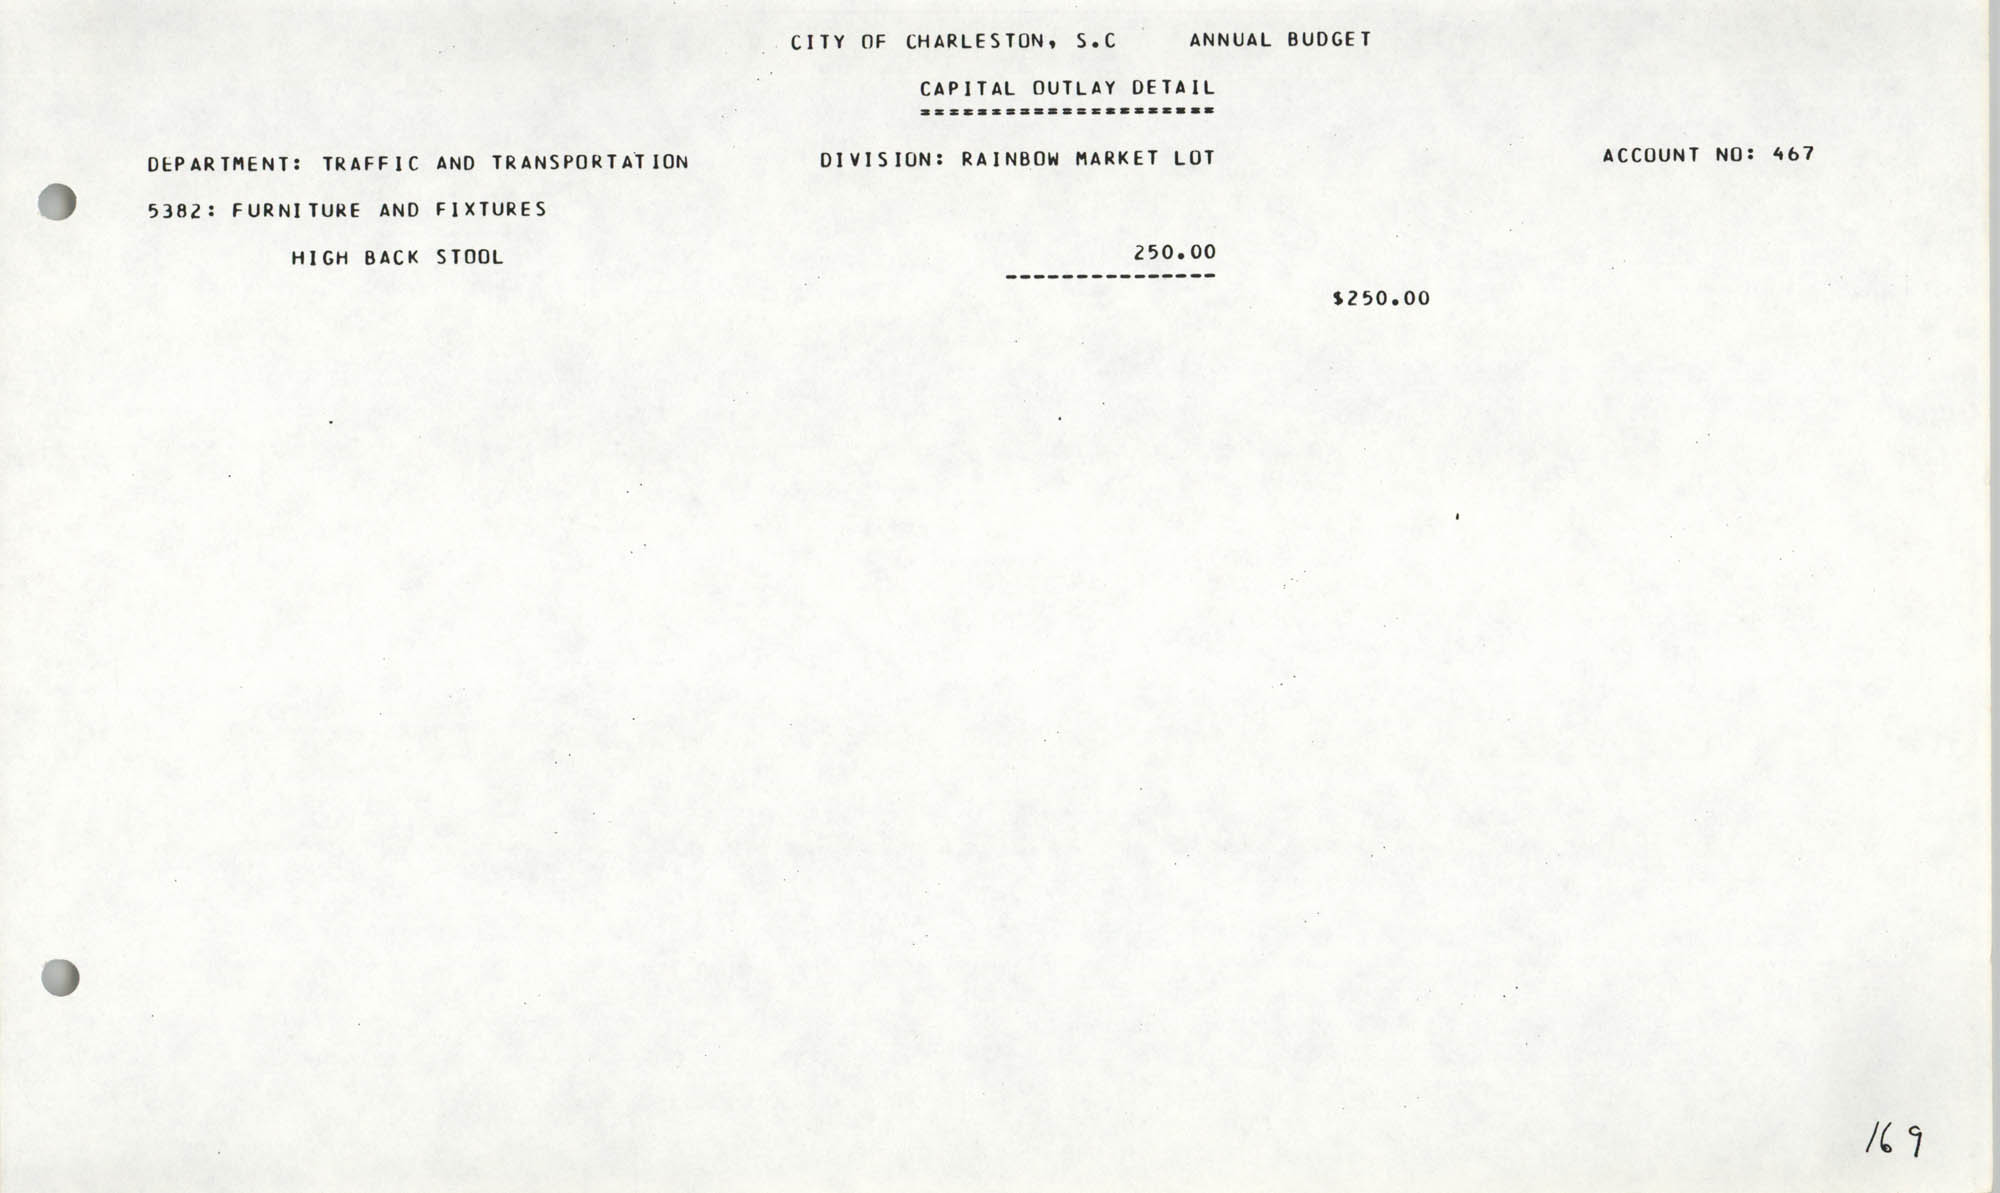 The City Council of Charleston, South Carolina, 1993 Budget, Page 169